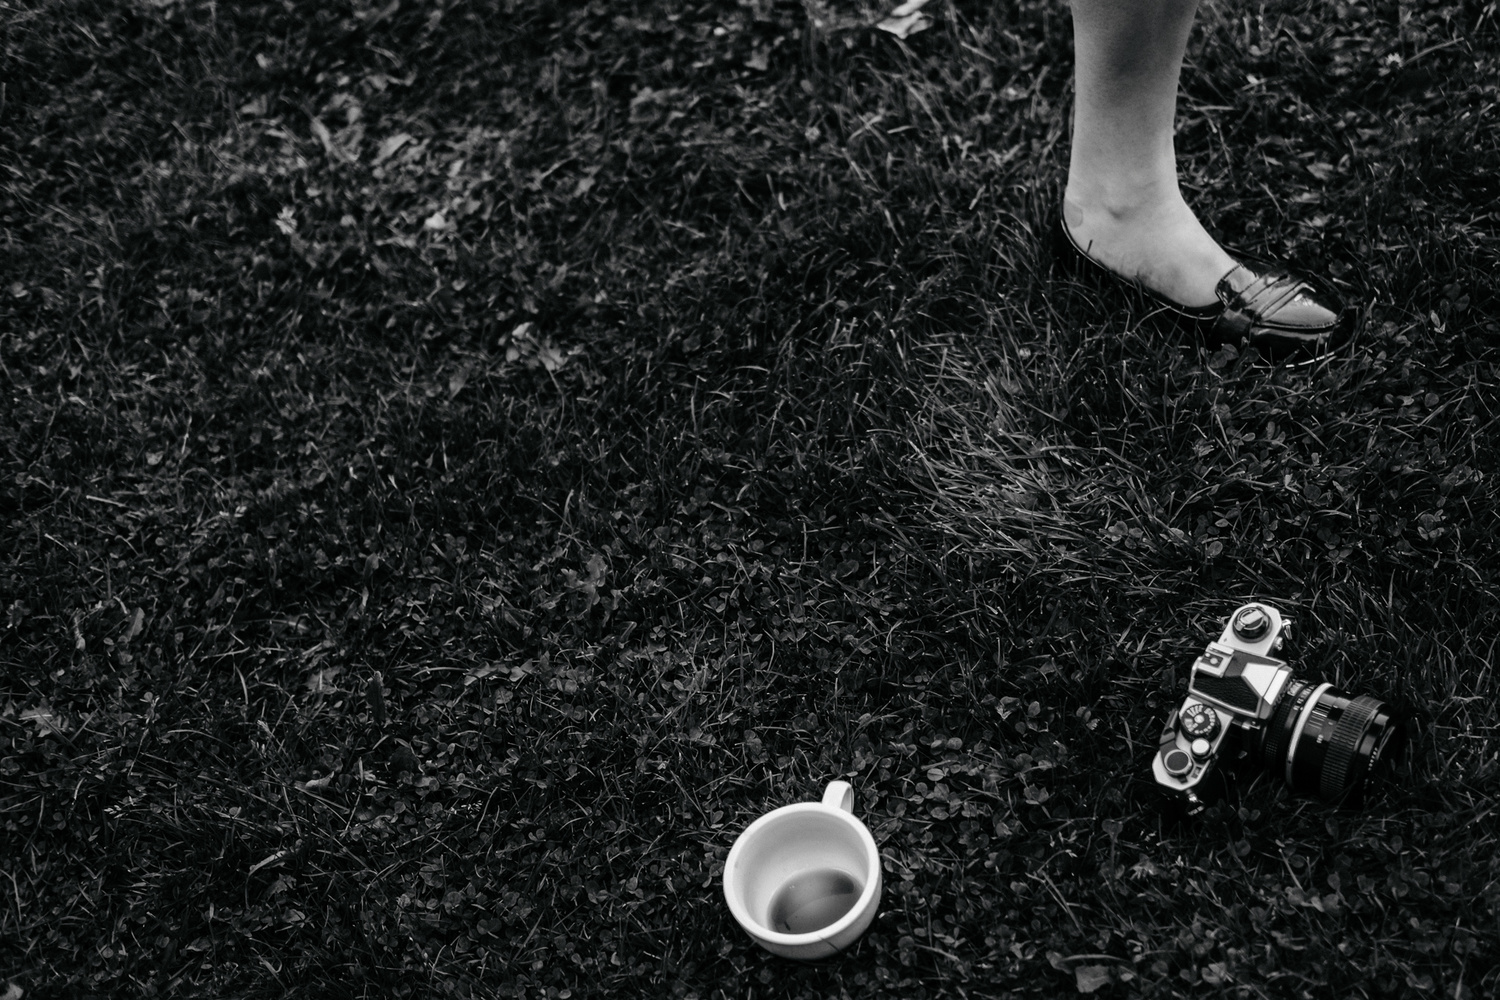 Monochrome shot of a girl's shoe, tea cup and a camera